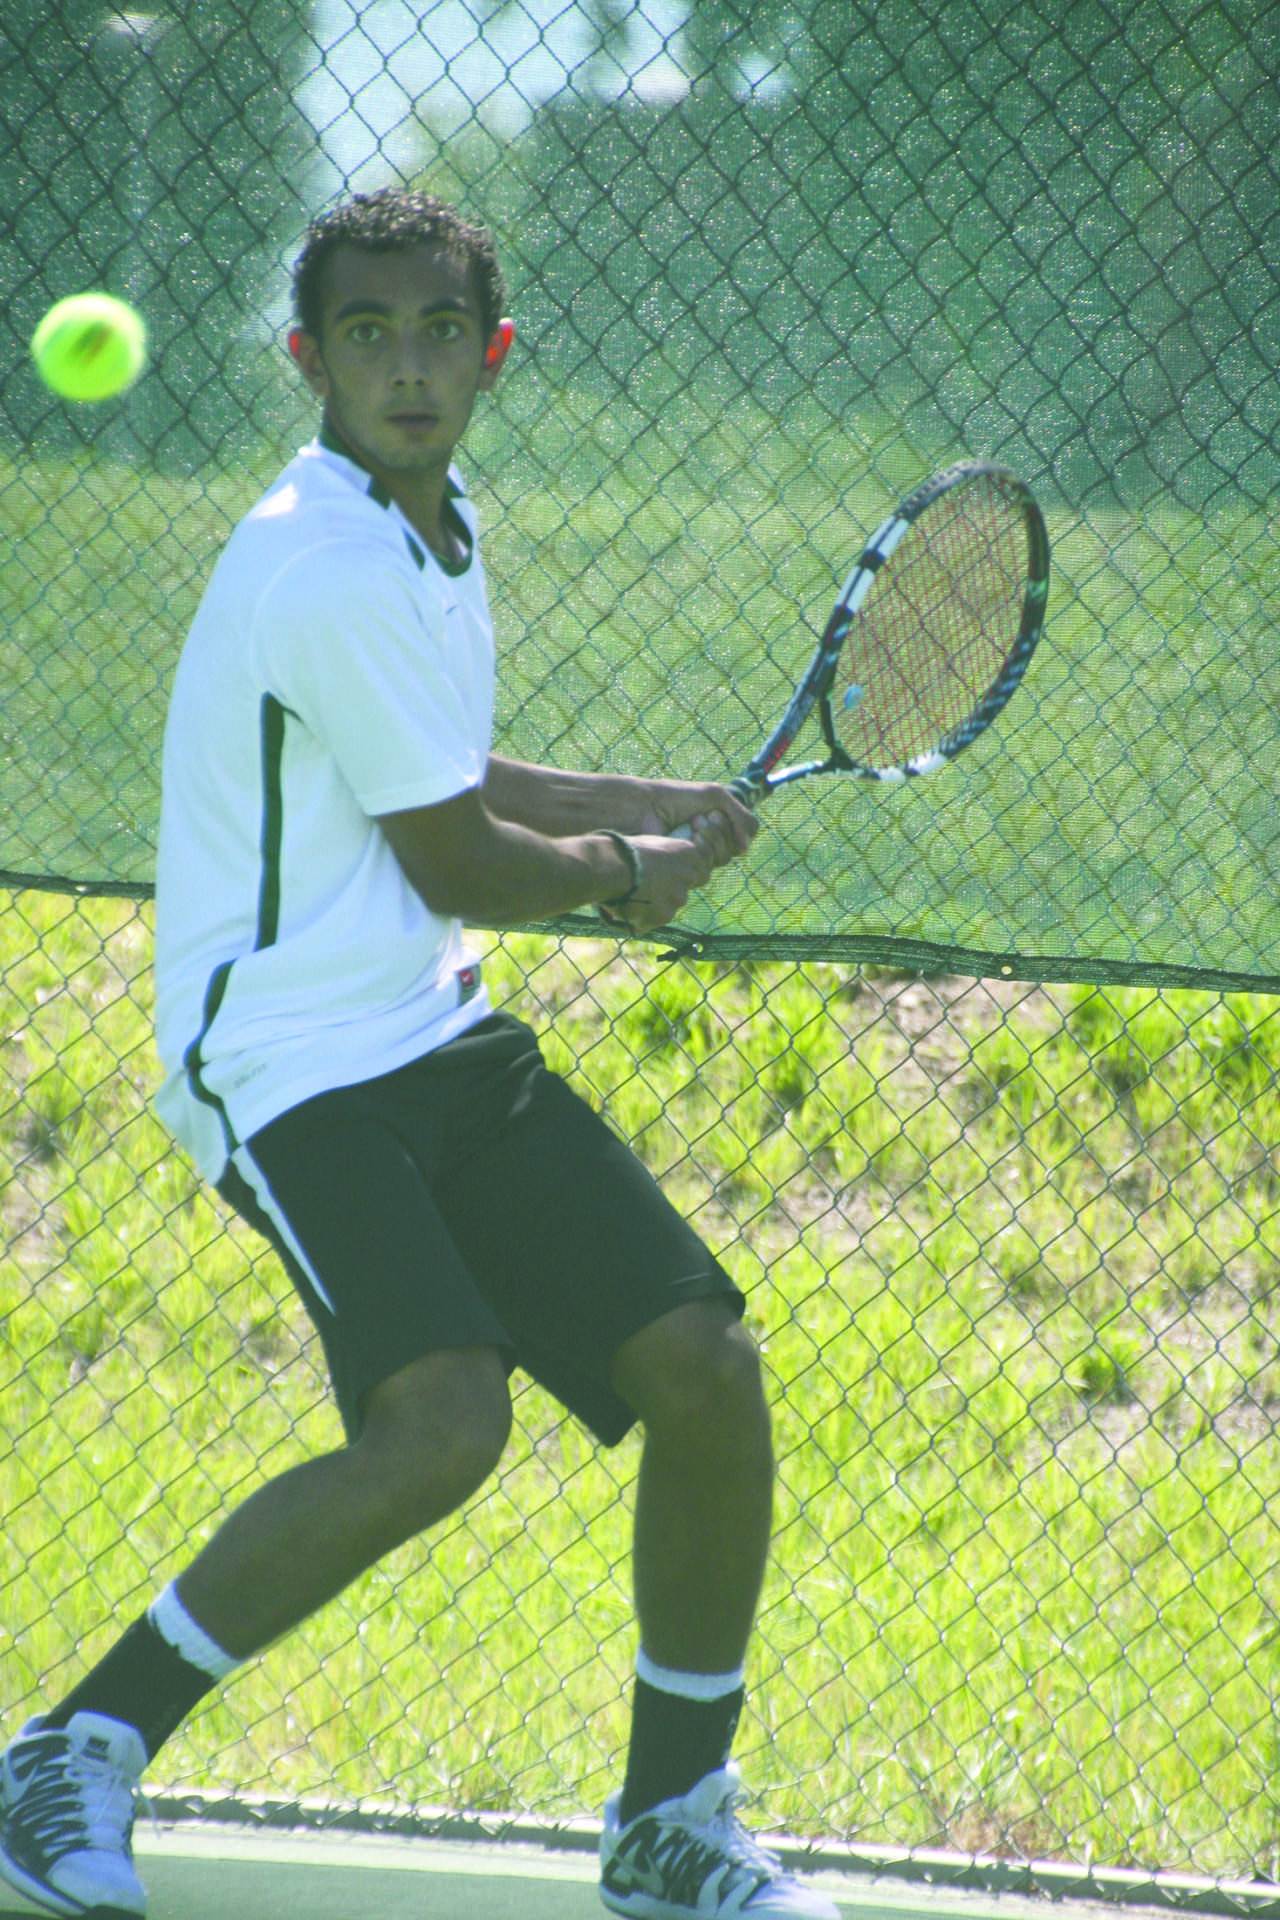 Gonzalez sets racket on competition ahead